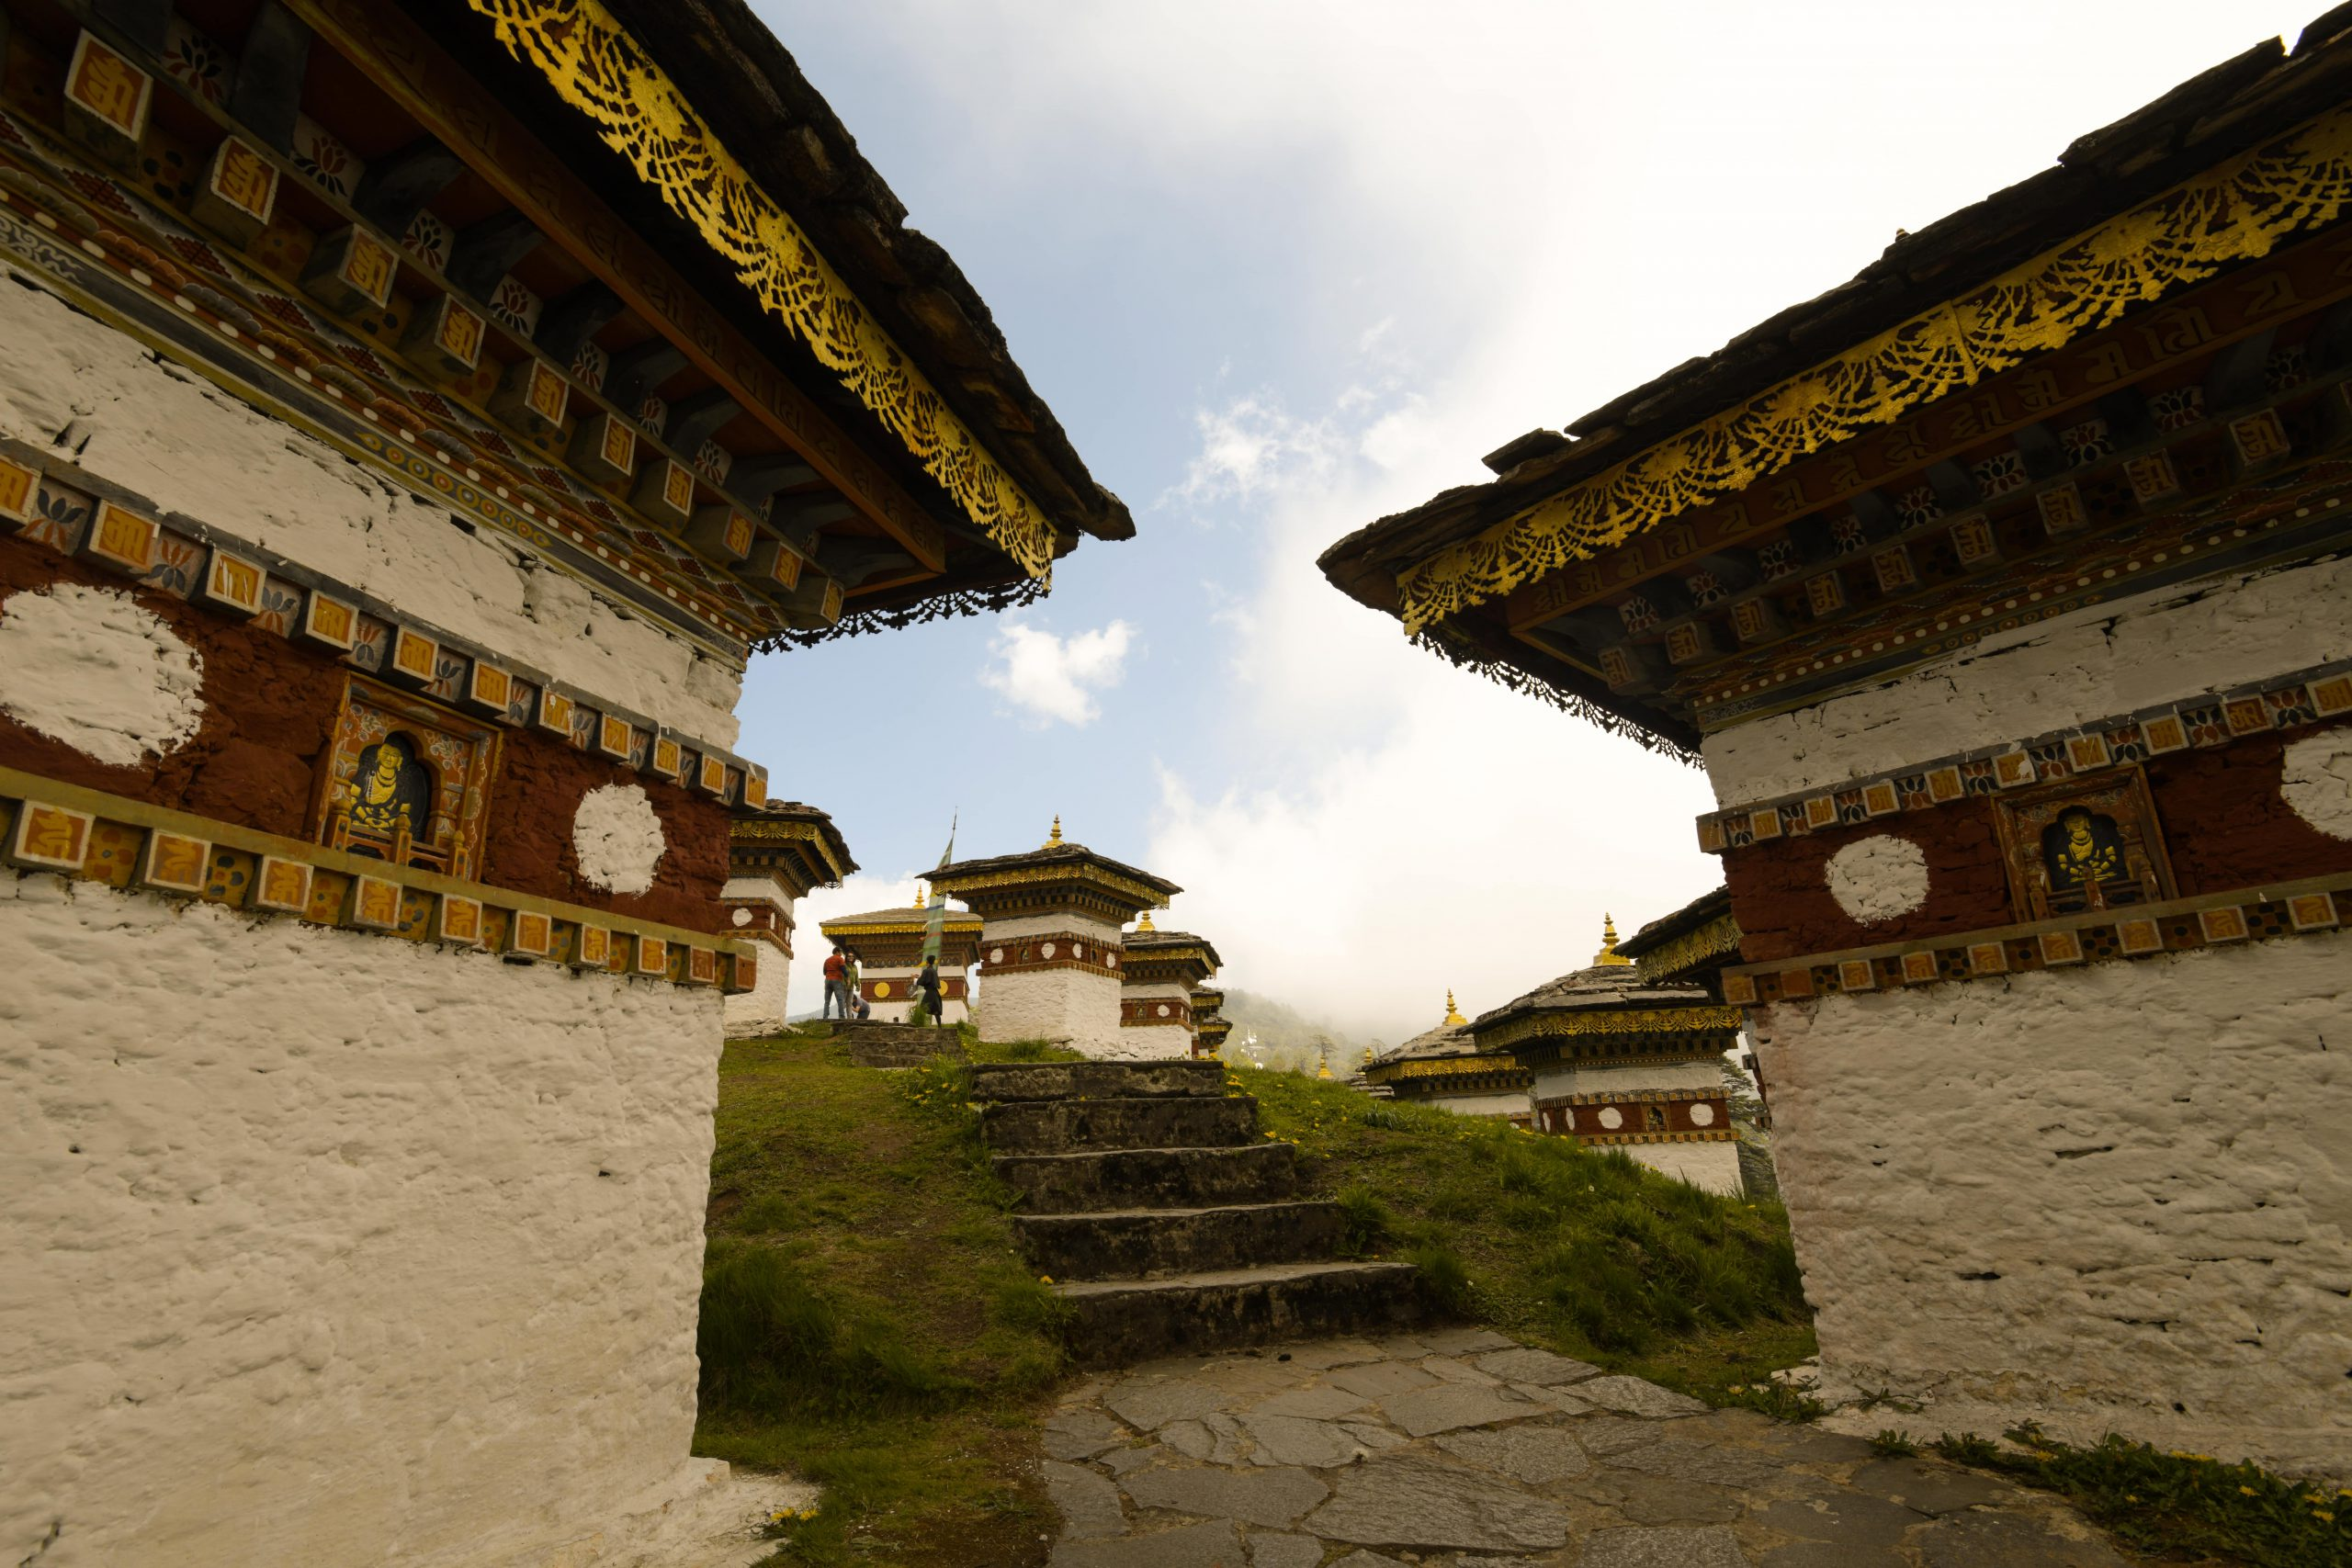 Dochula pass is located on the way to Punakha from Thimphu, forming a majestic backdrop to the tranquility of the 108 chortens gracing the mountain pass.